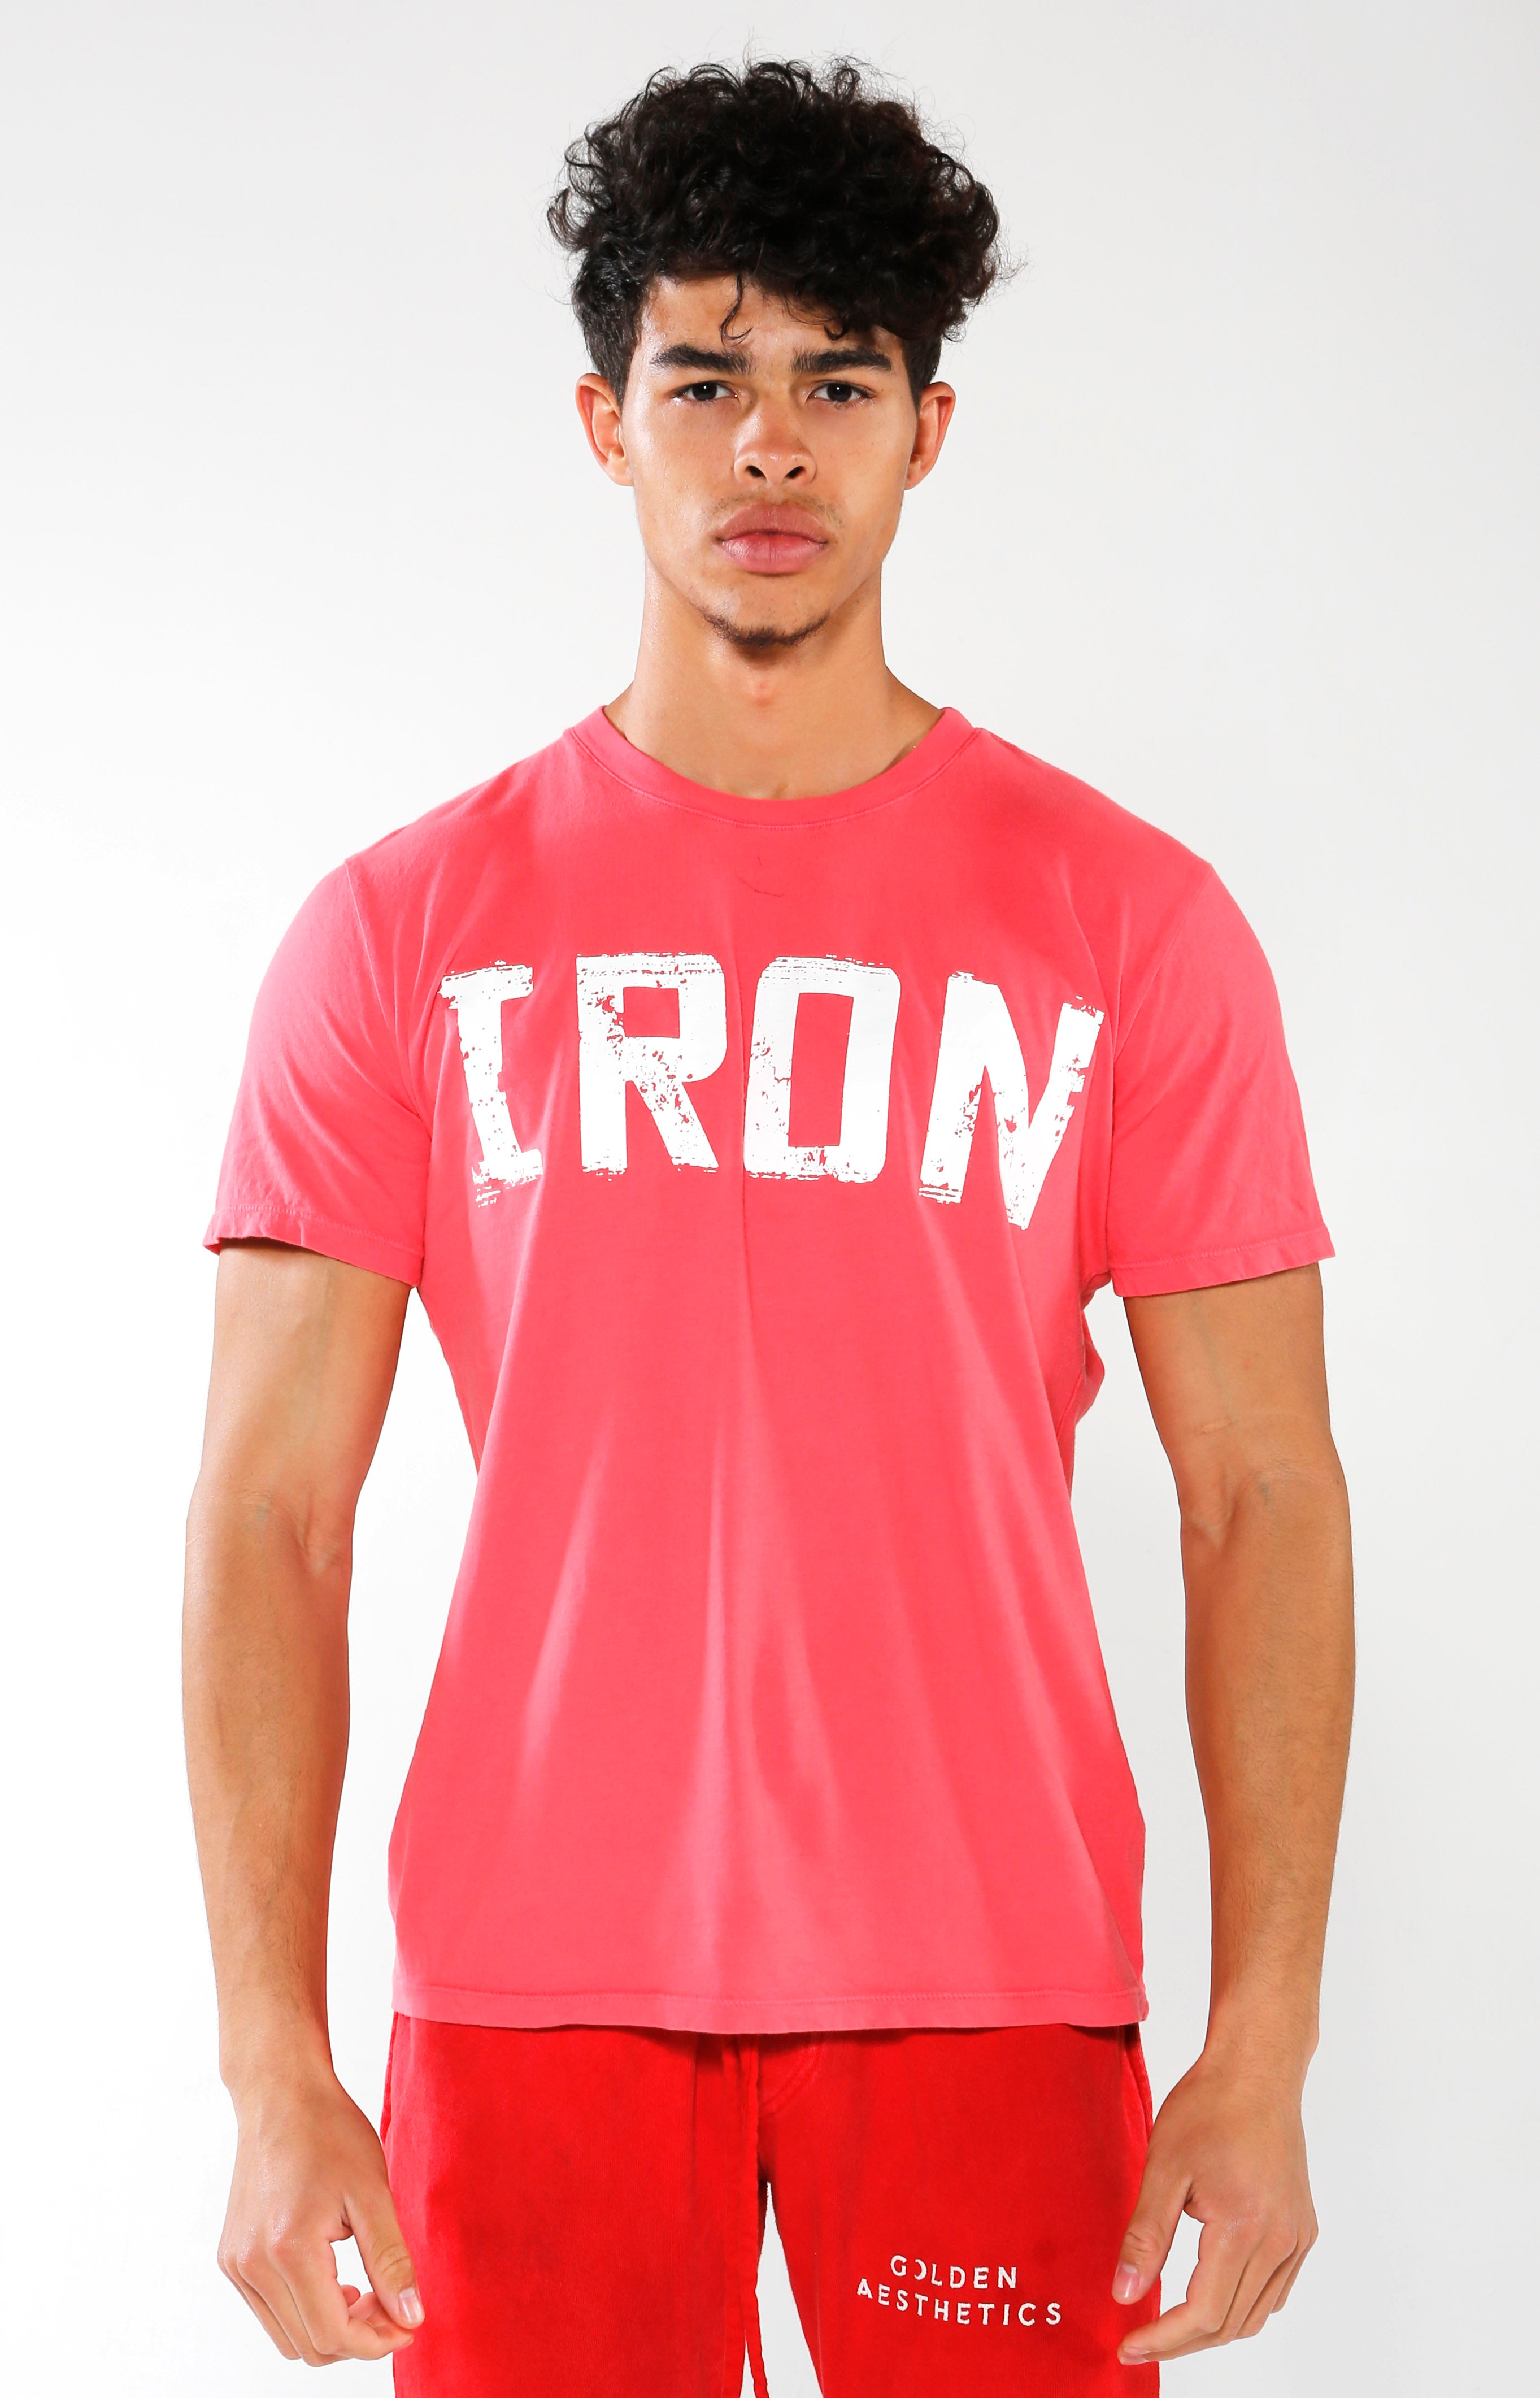 Men's Red IRON T-Shirt | Golden Aesthetics - Golden Aesthetics